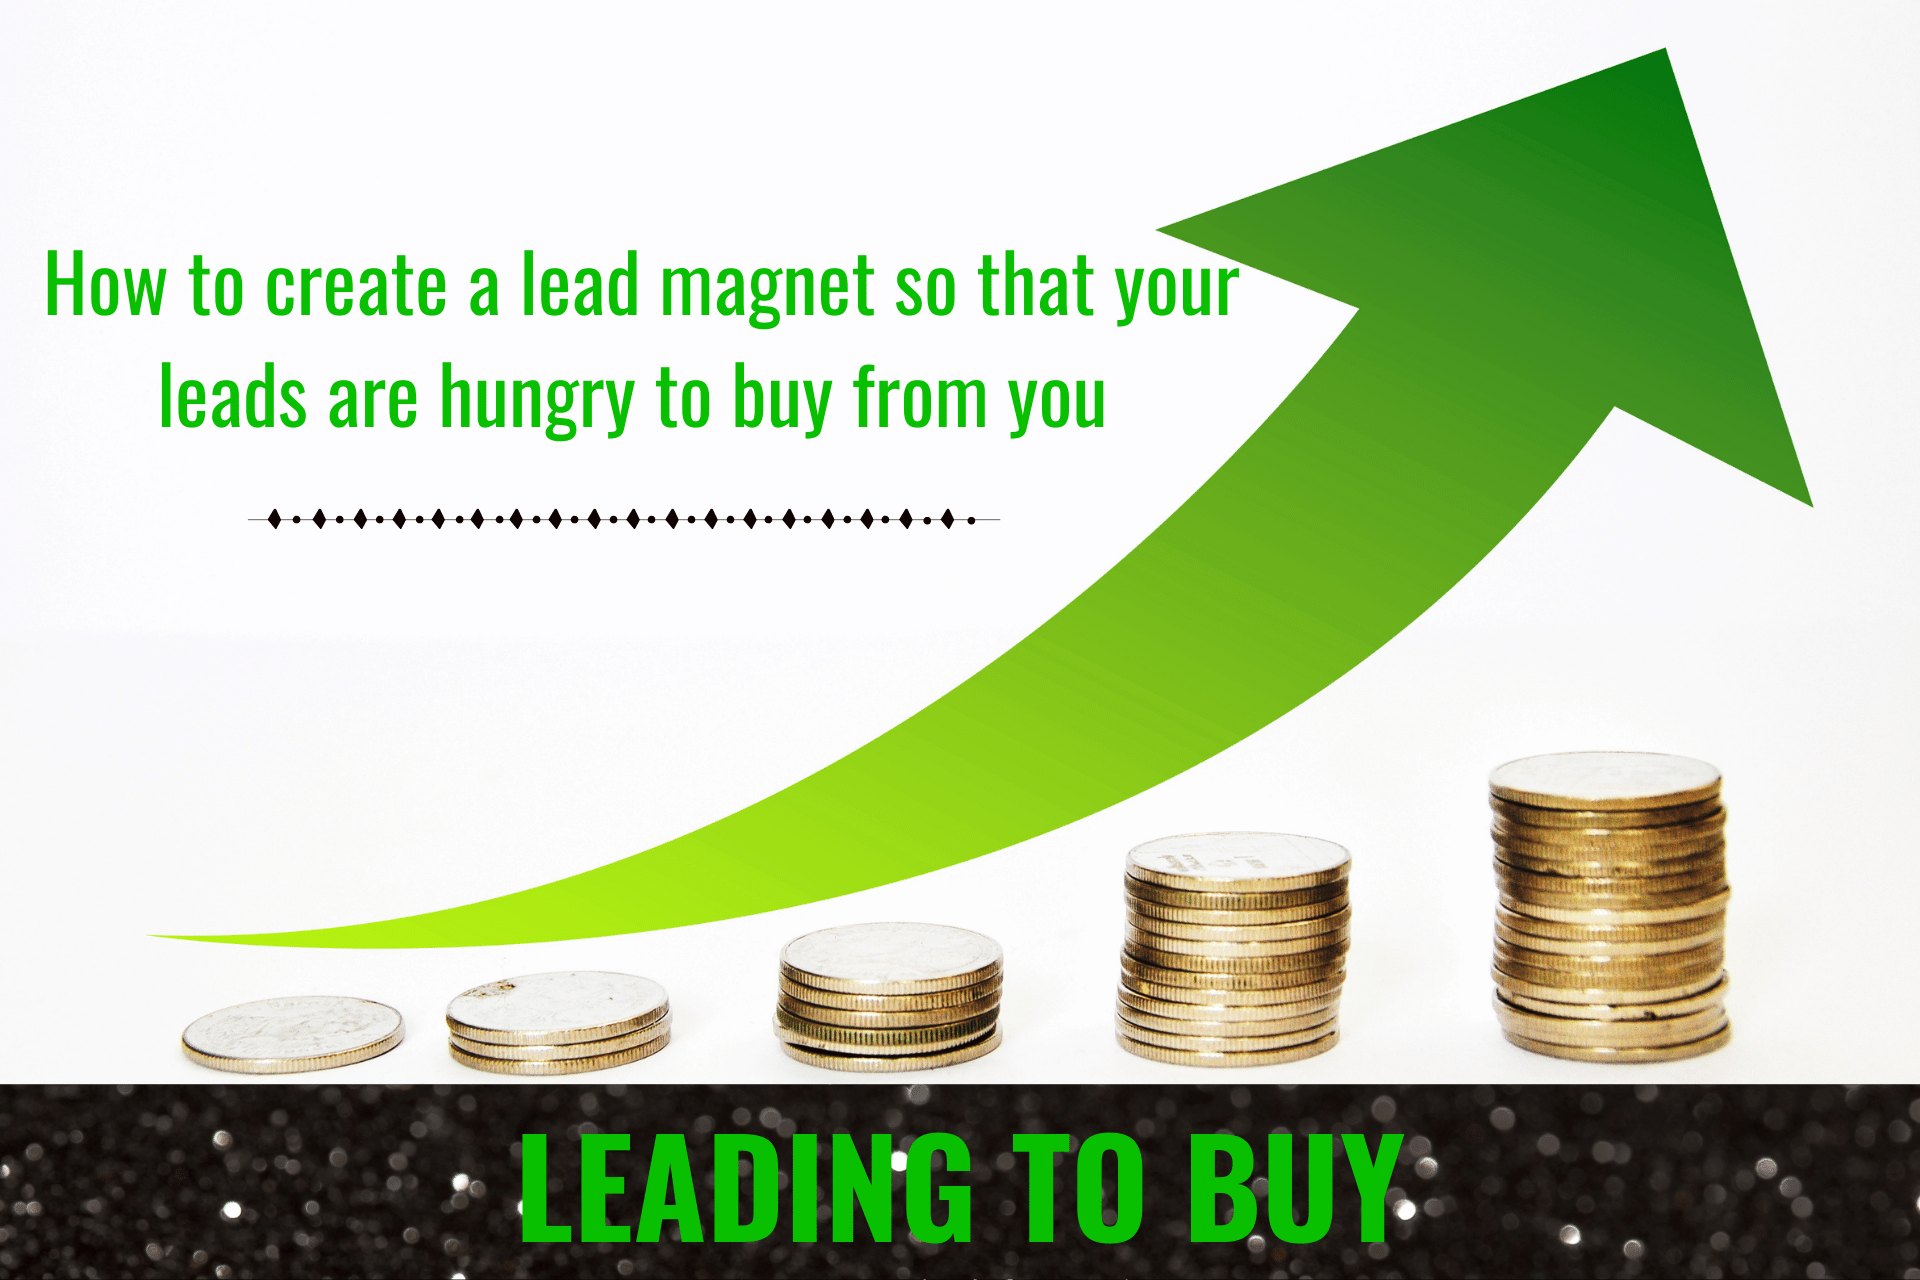 Leading to Buy